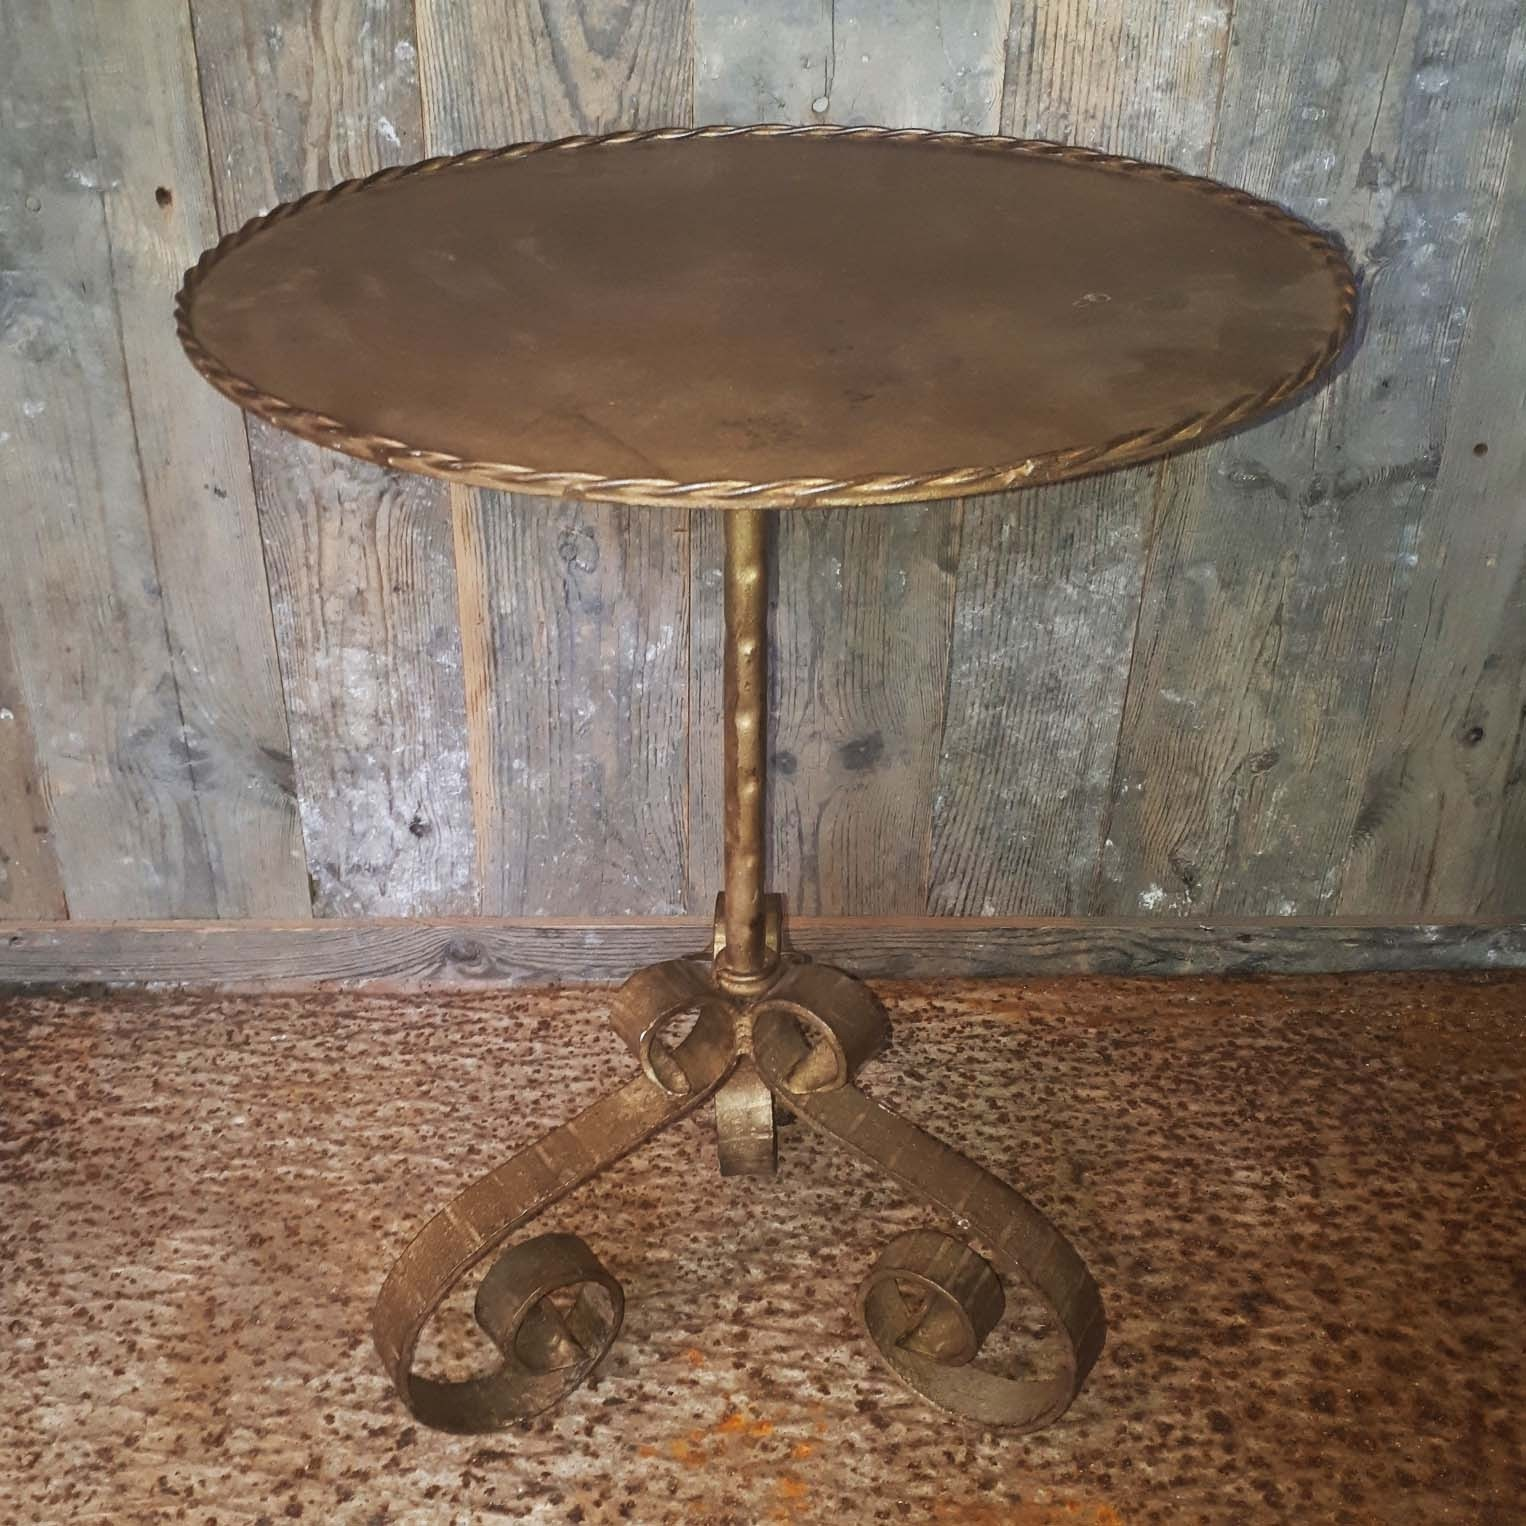 Old side table antique gold H 60 x D 45 cm